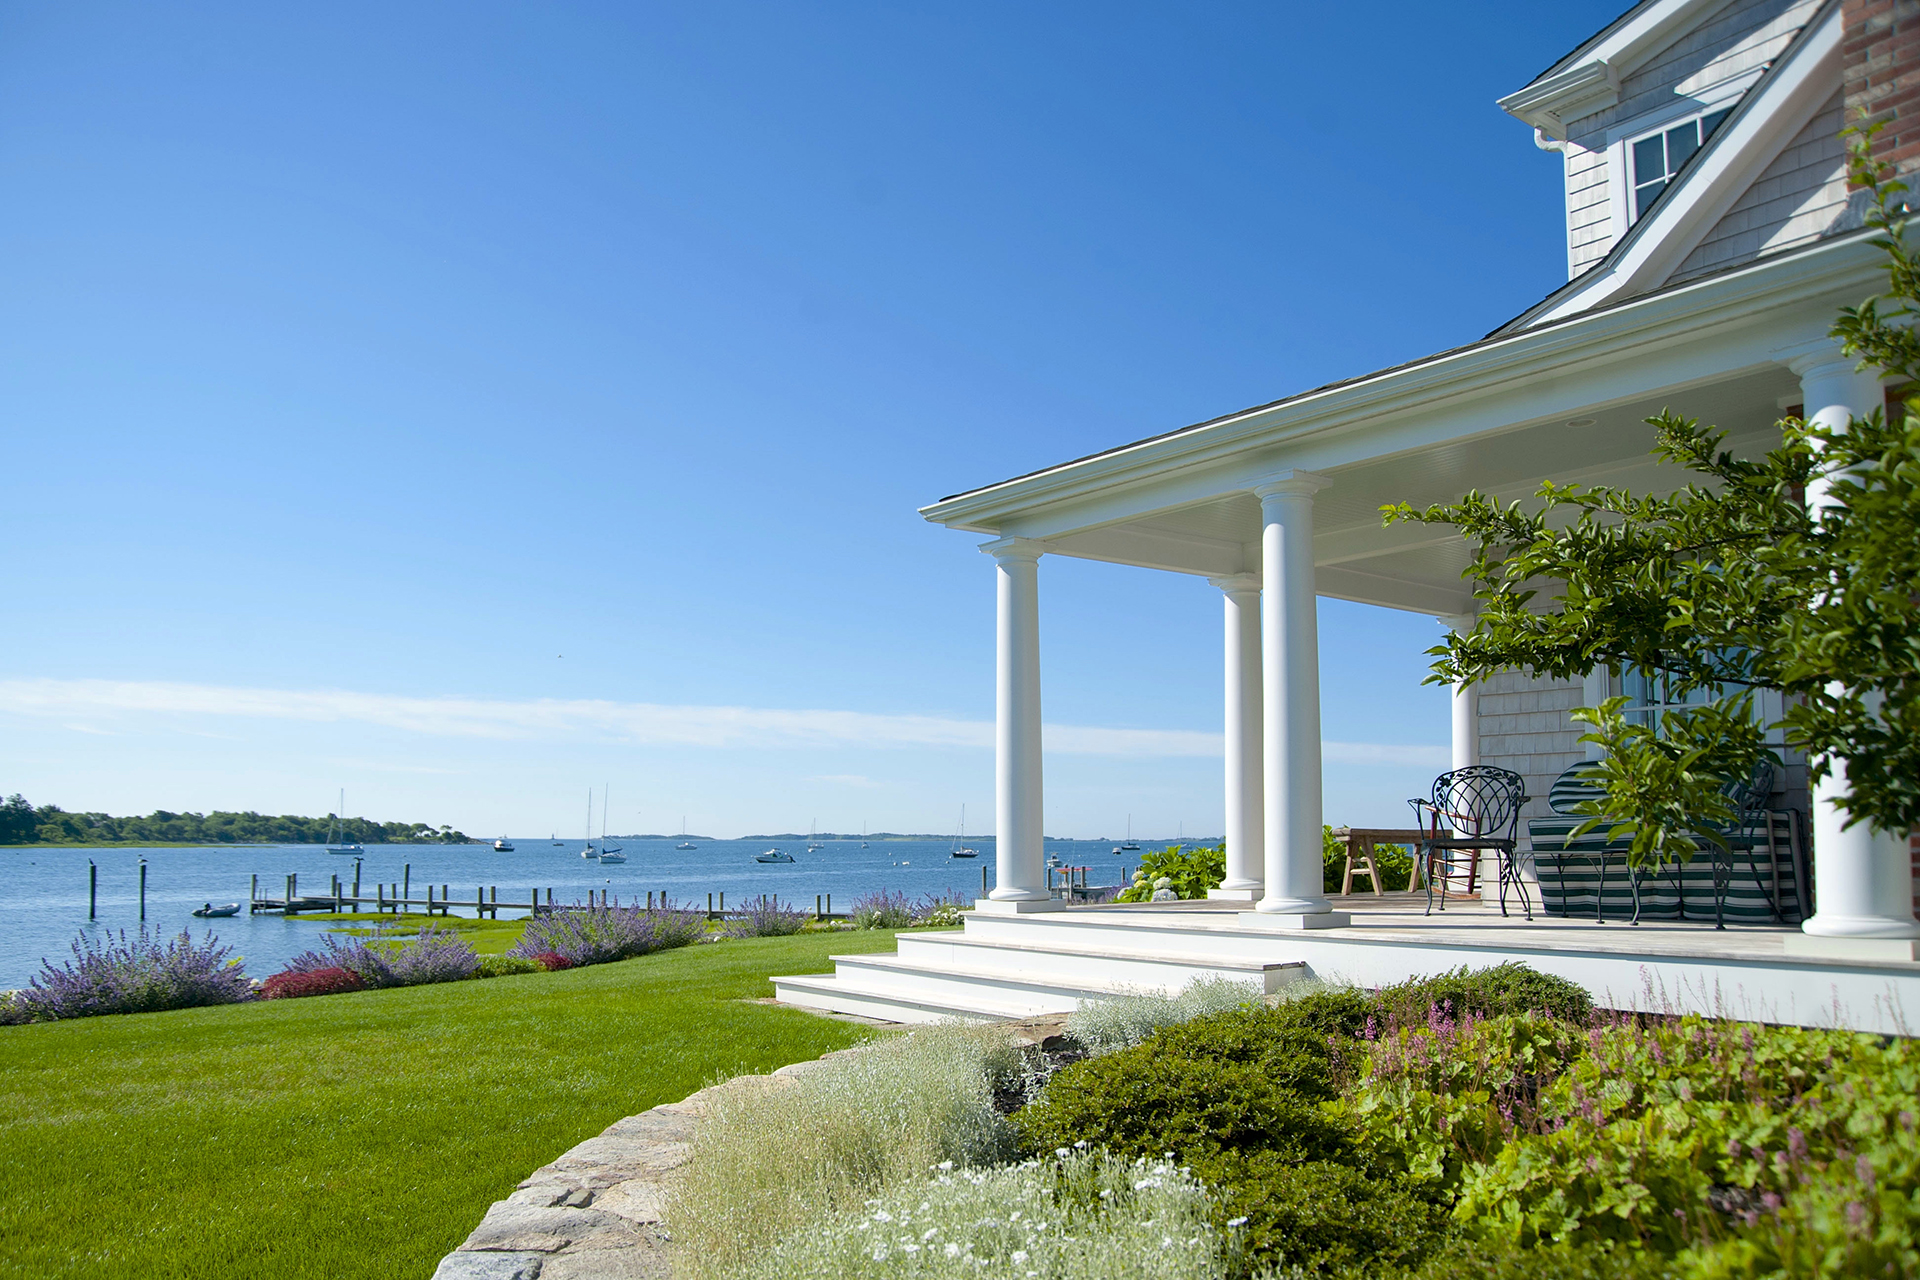 mbvarchitects in located Old Mystic, CT